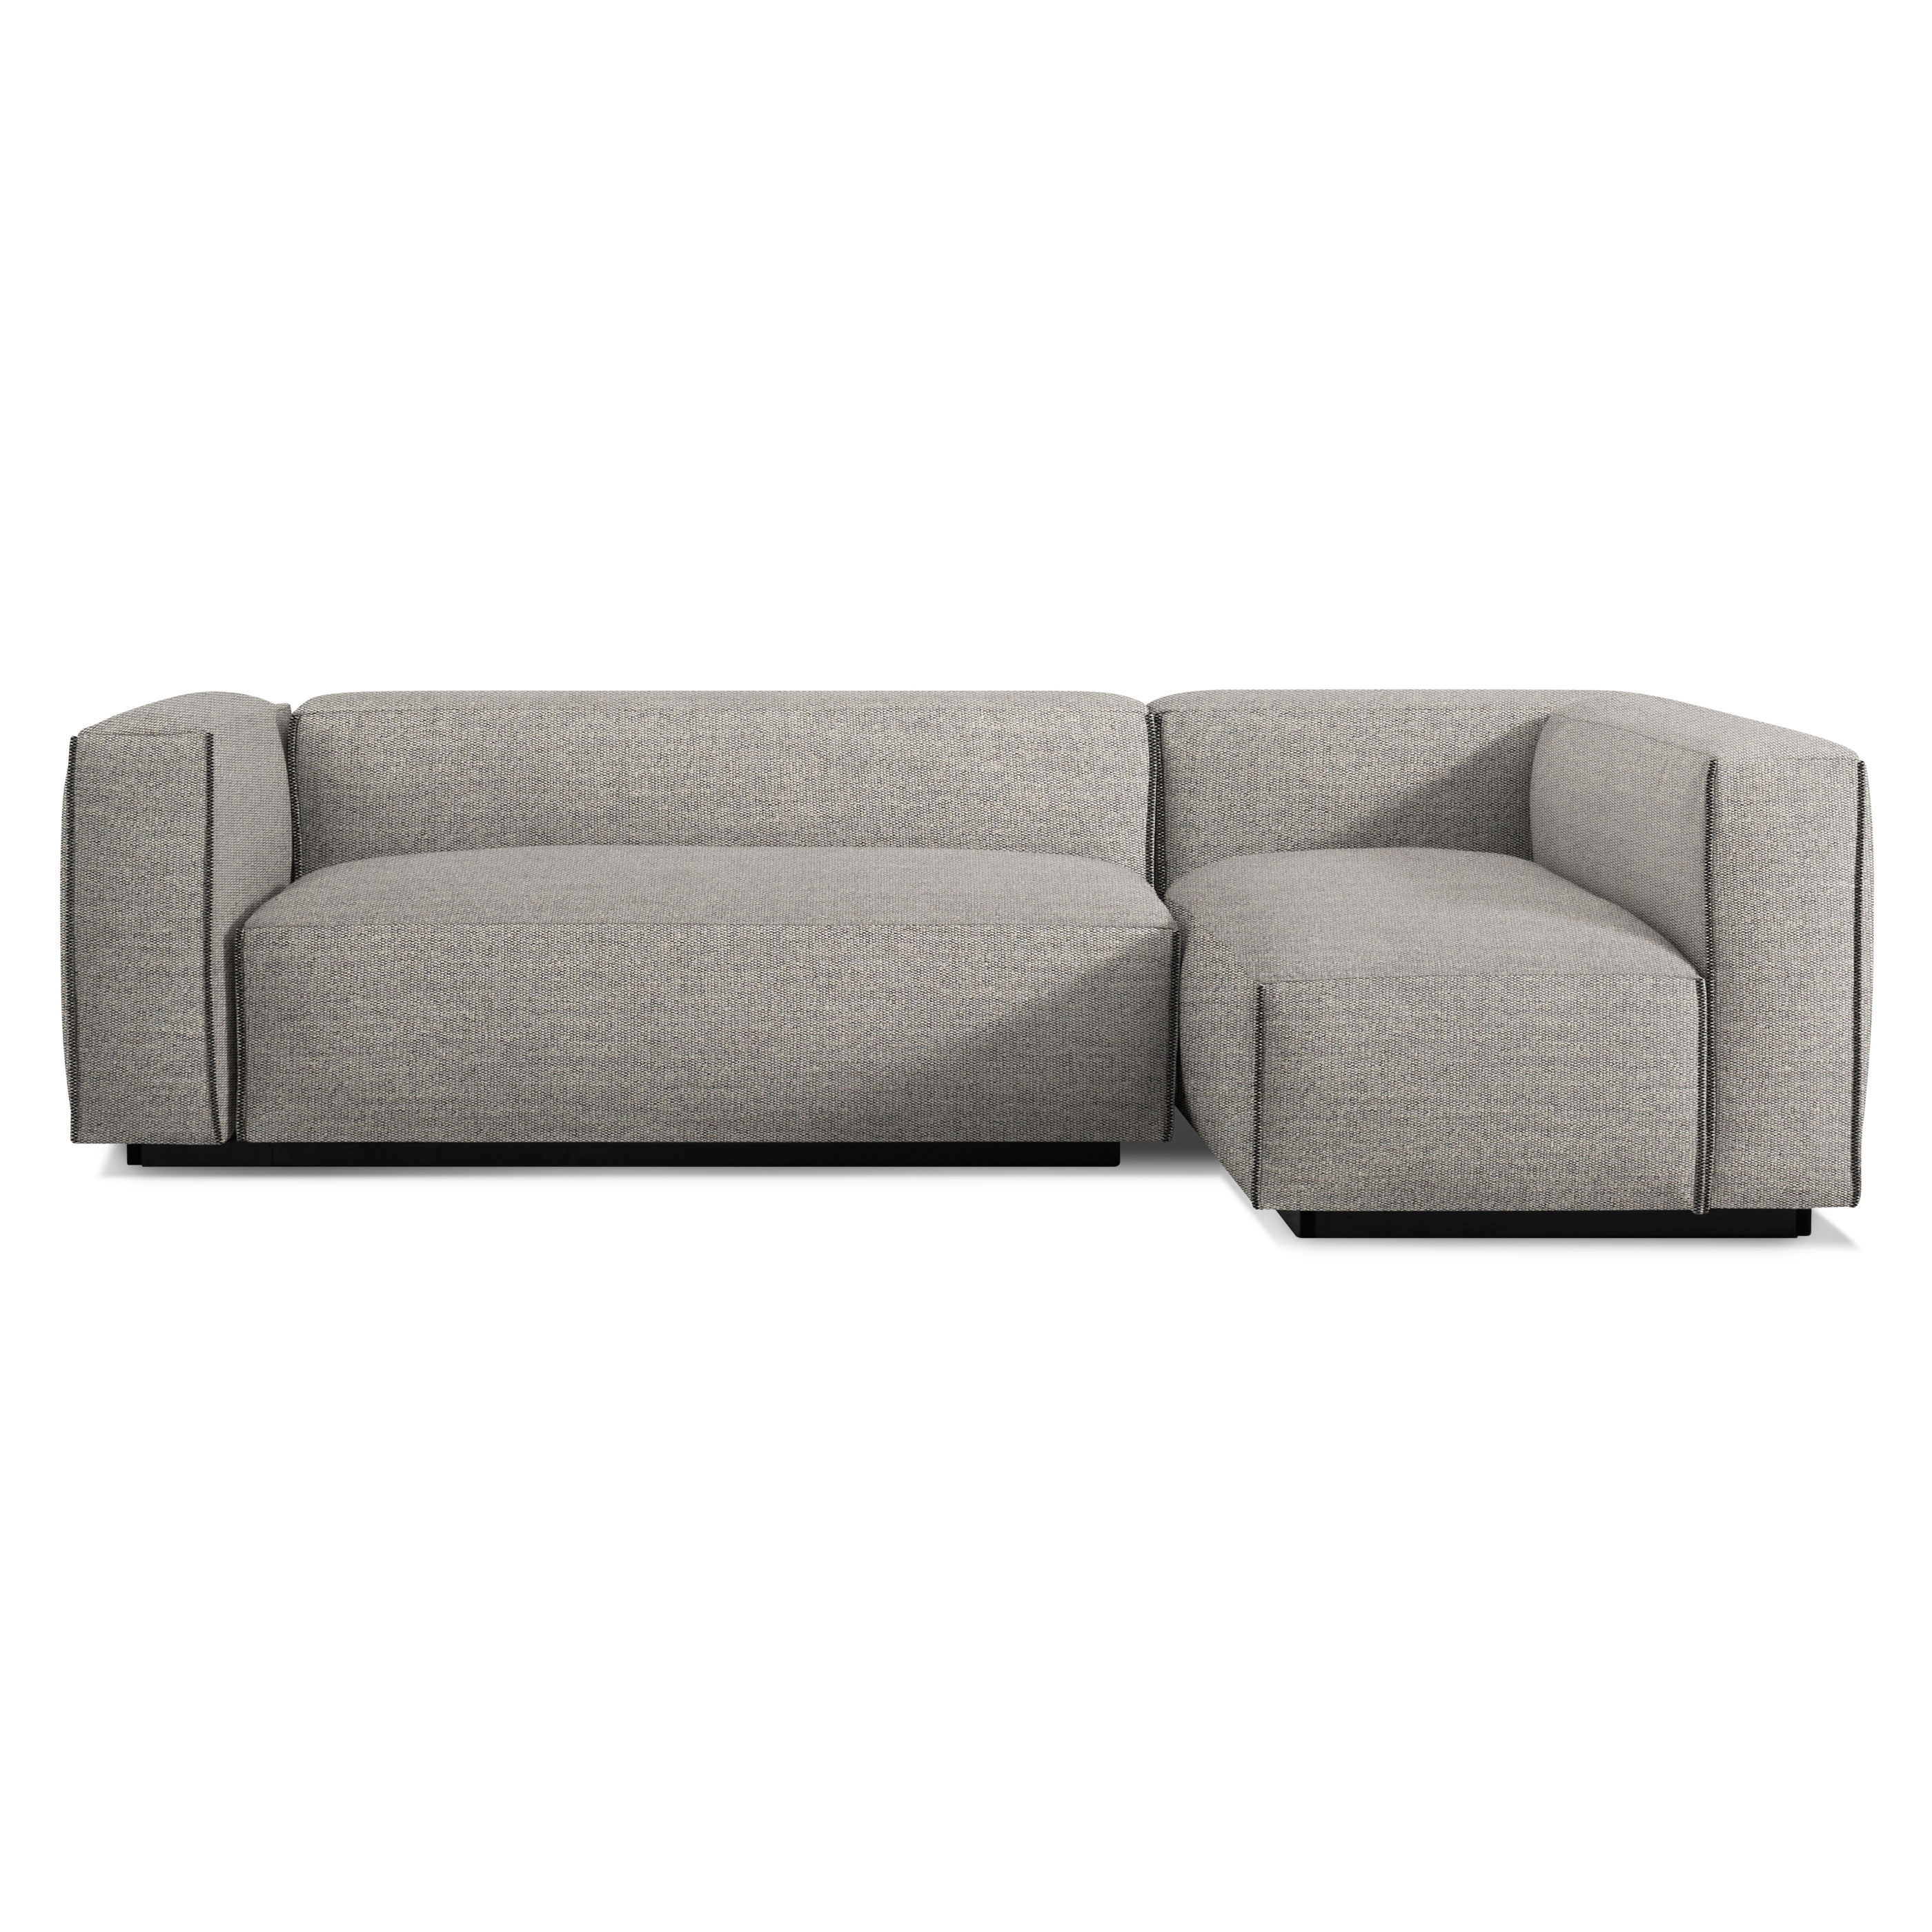 small sectional couch previous image cleon small sectional sofa - tait charcoal ... YOMROBR